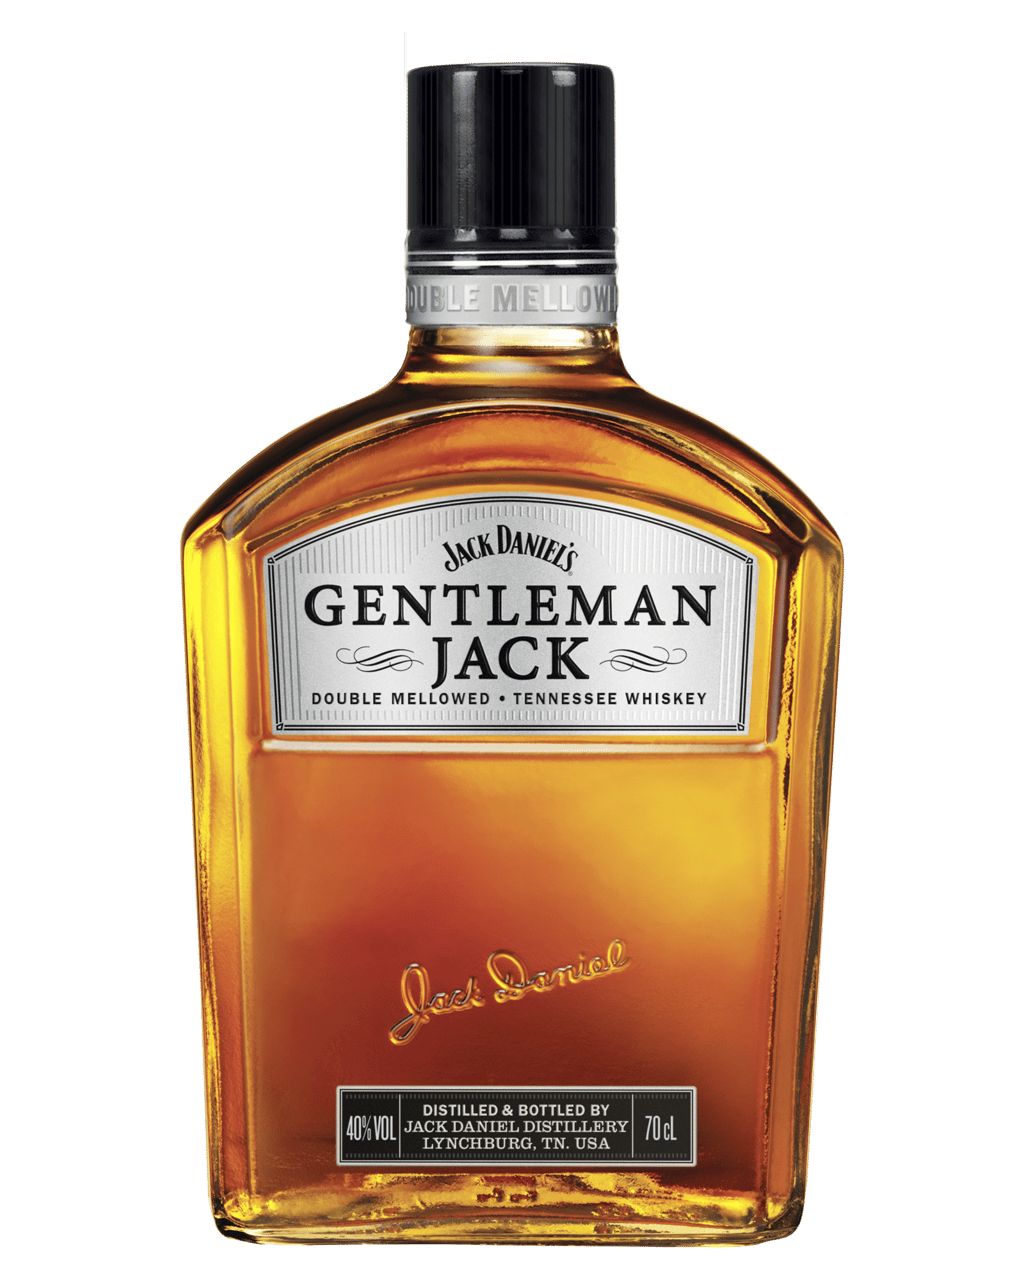 1951a89a96e Gentleman Jack Tennessee Whiskey 700mL